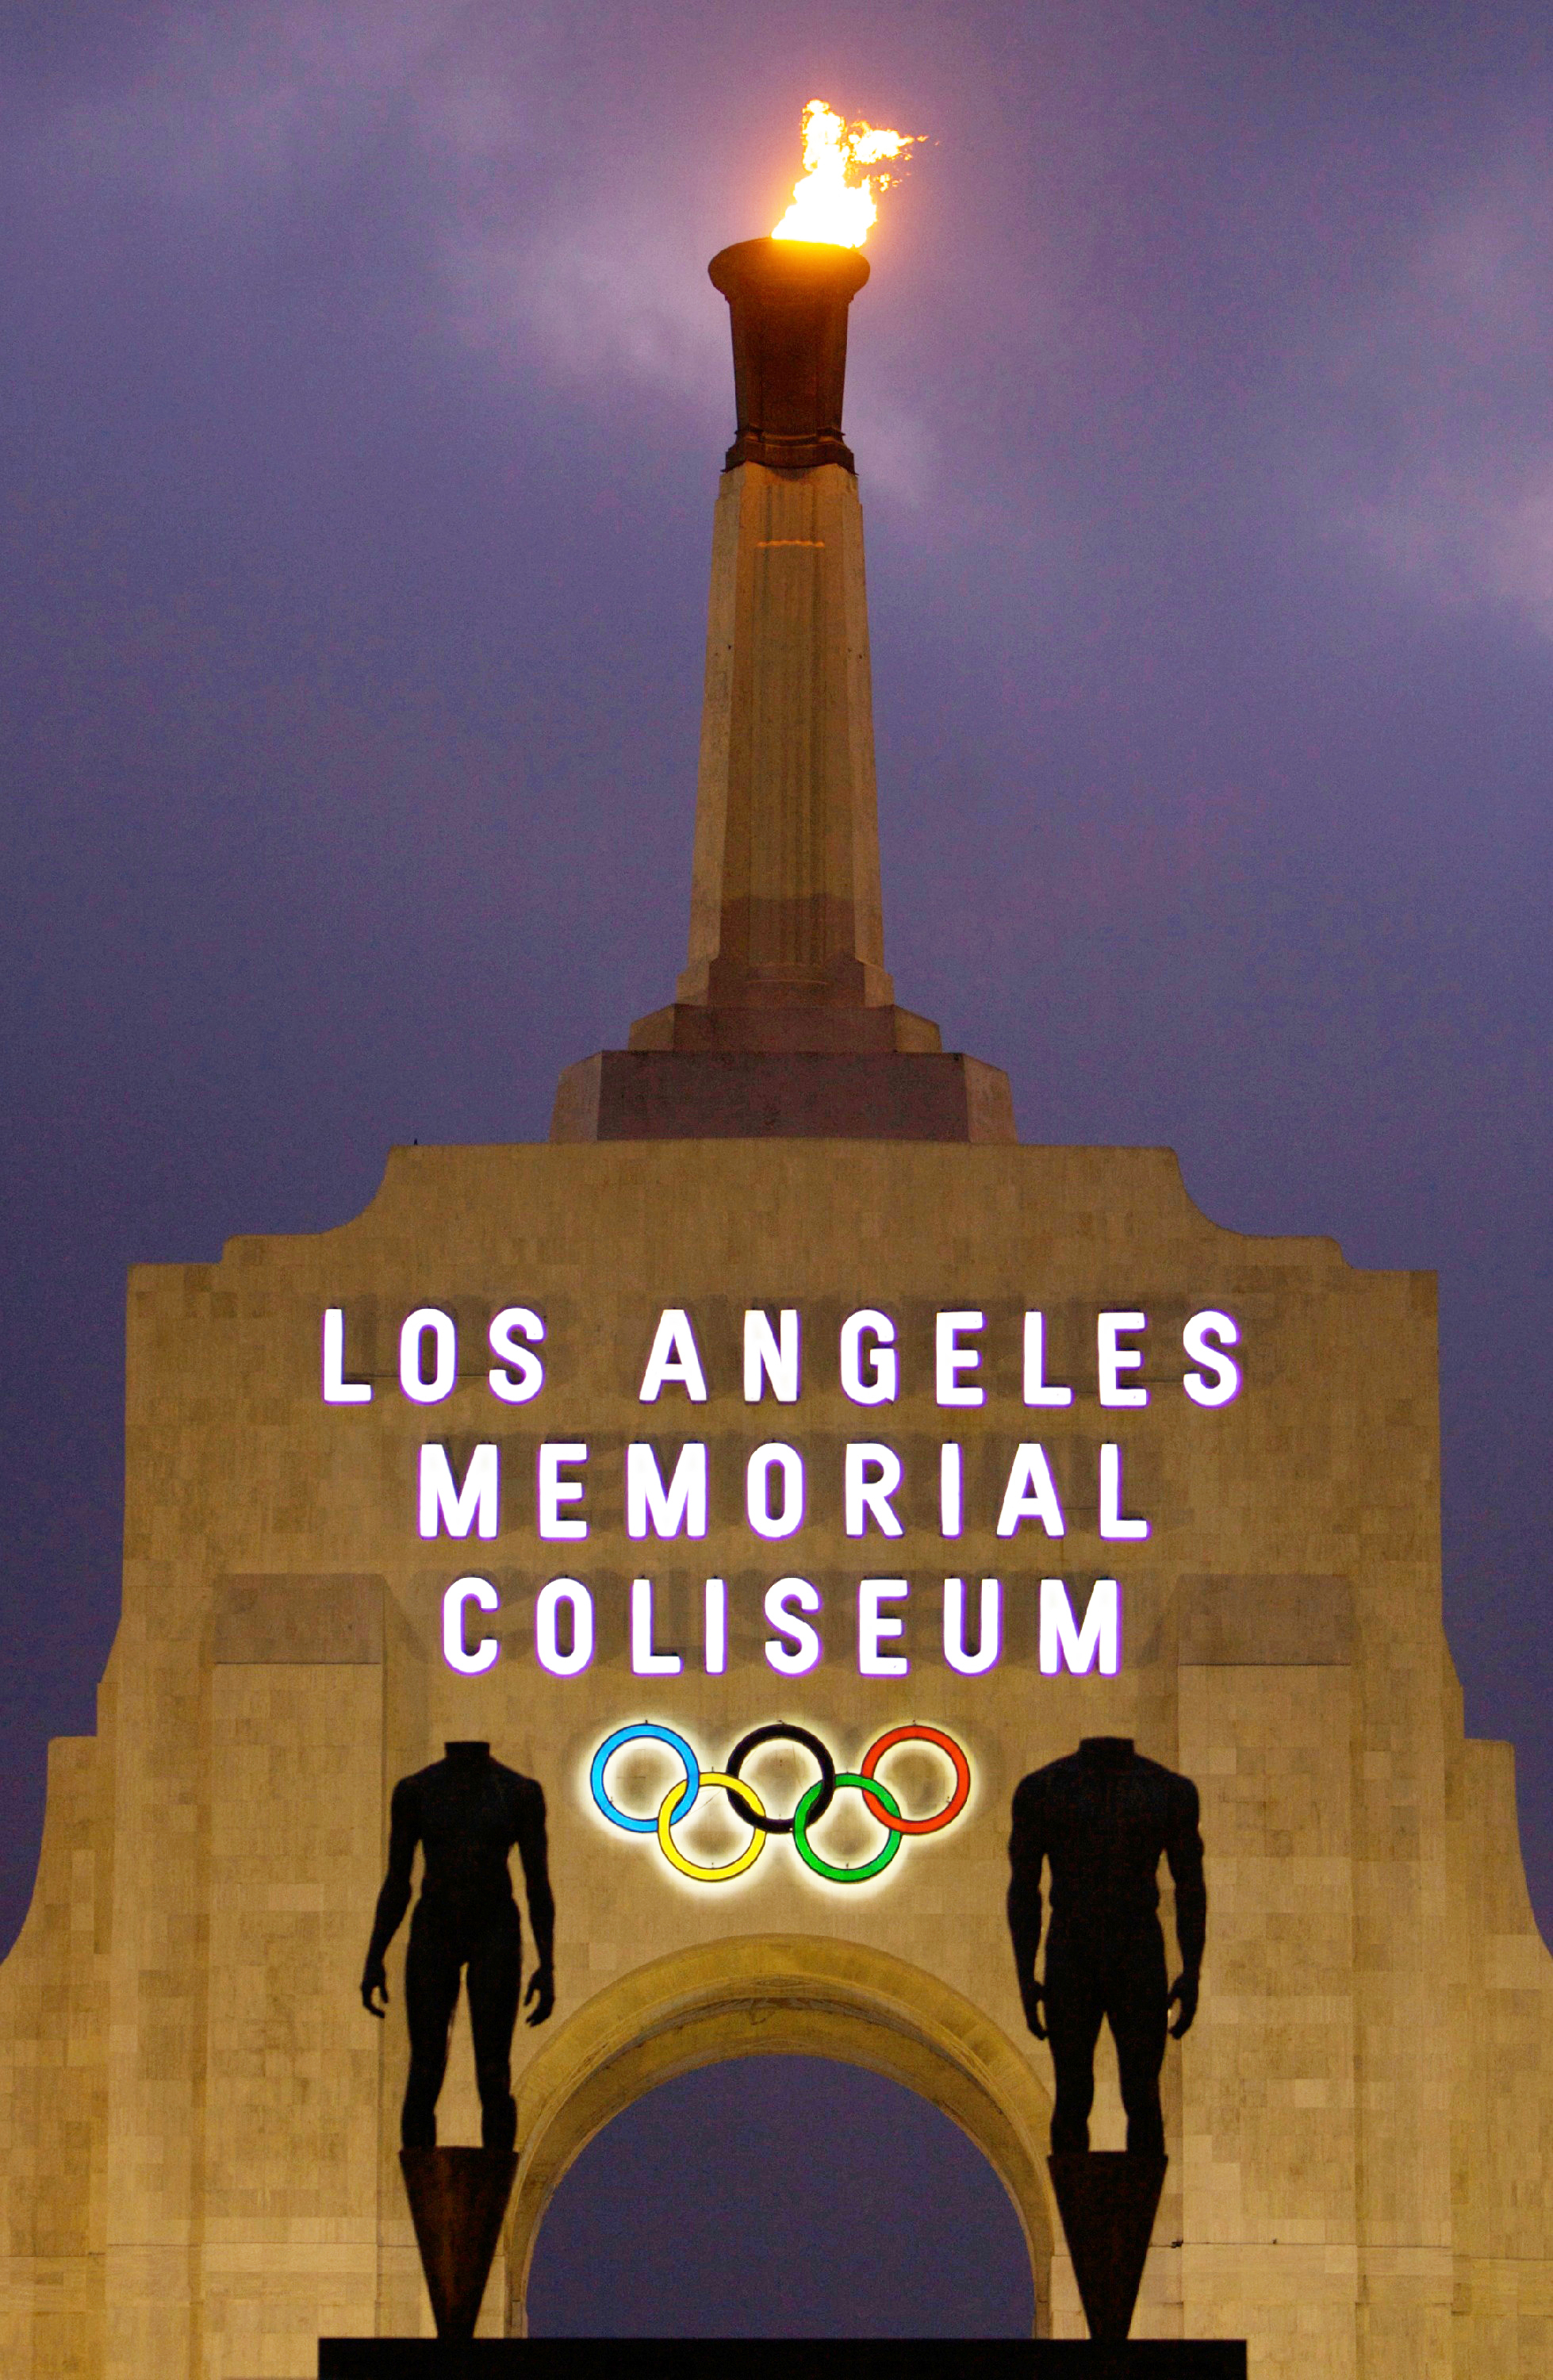 FILE - This Feb. 13, 2008, file photo shows the facade of The Los Angeles Memorial Coliseum in Los Angeles. It was announced Monday, July 31, 2017, that Los Angeles has reached an agreement with international Olympic leaders that will open the way for the